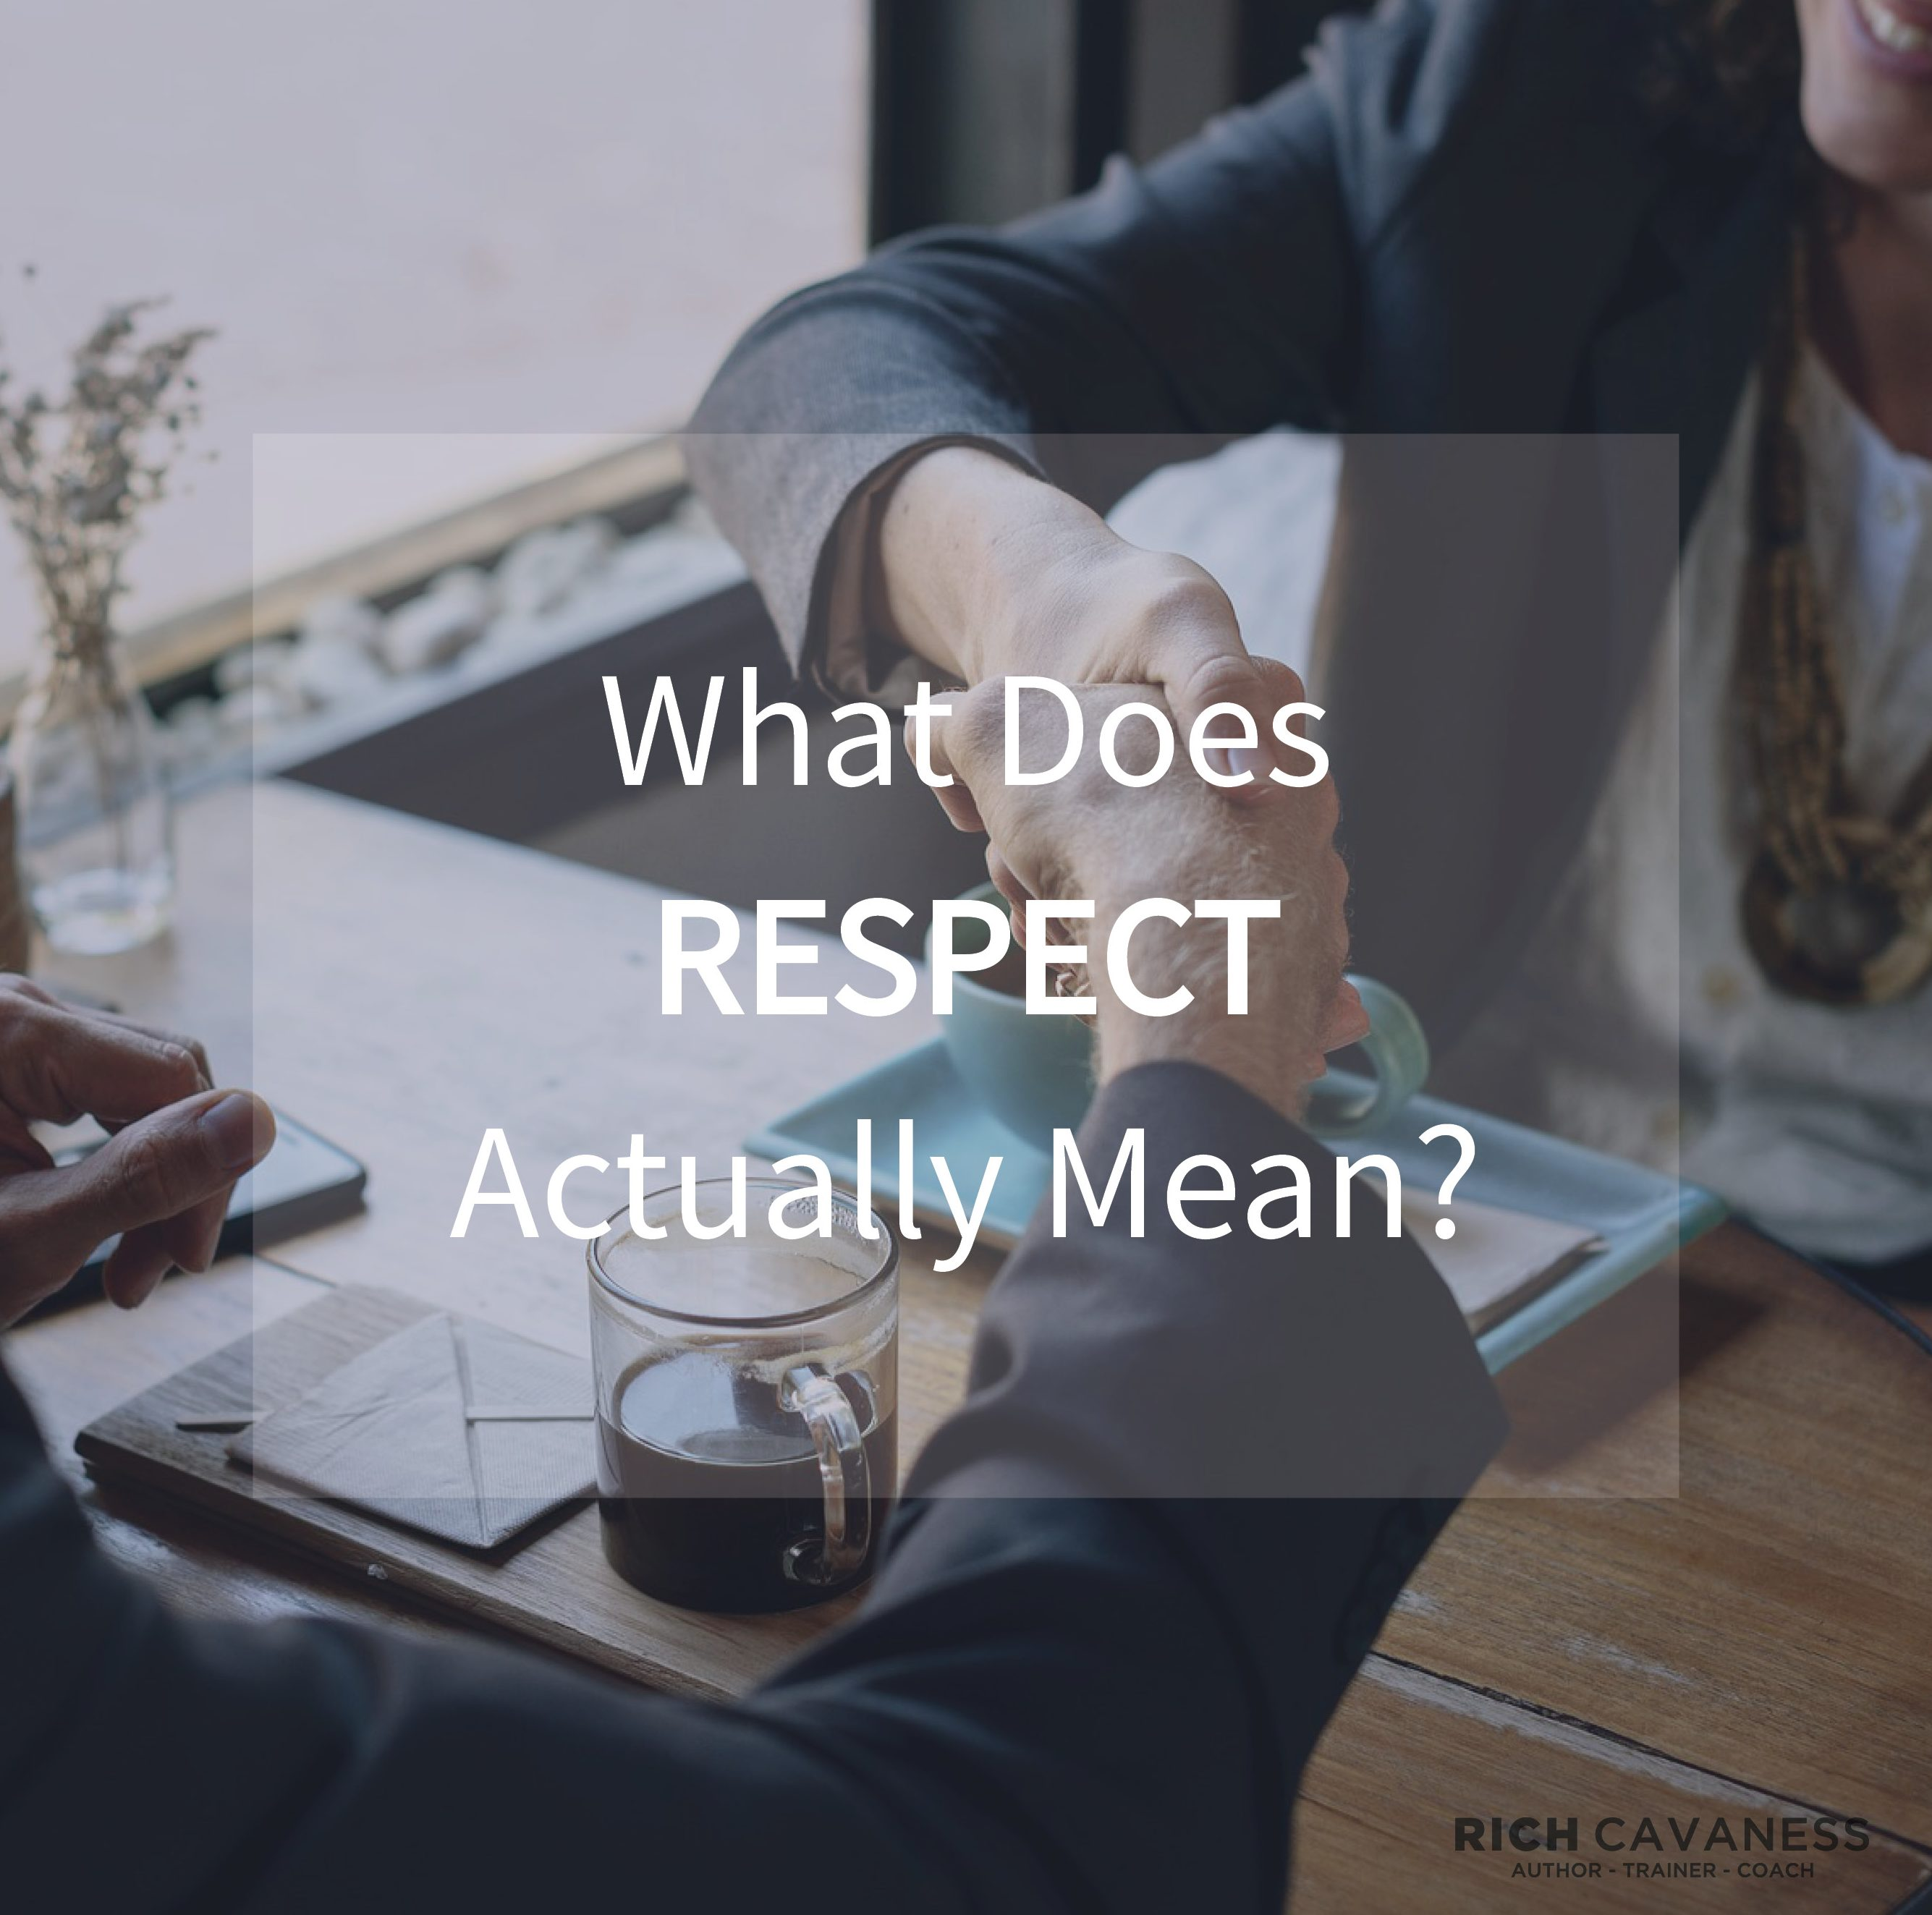 What Does R.E.S.P.E.C.T. Actually Mean?